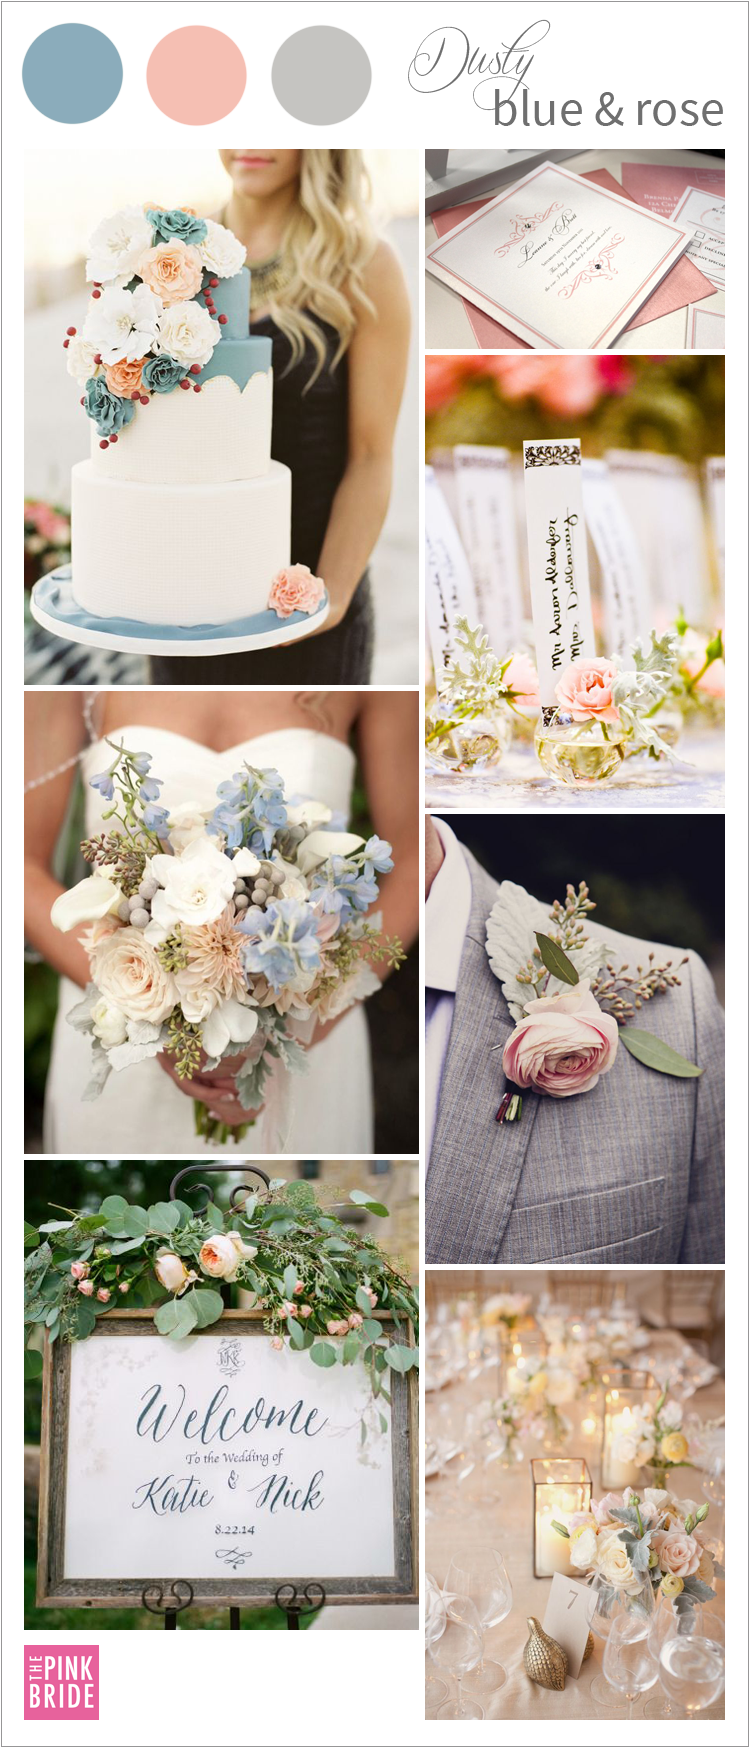 58cc663cc778 Love this dusty blue wedding and dusty rose wedding color board  inspiration!